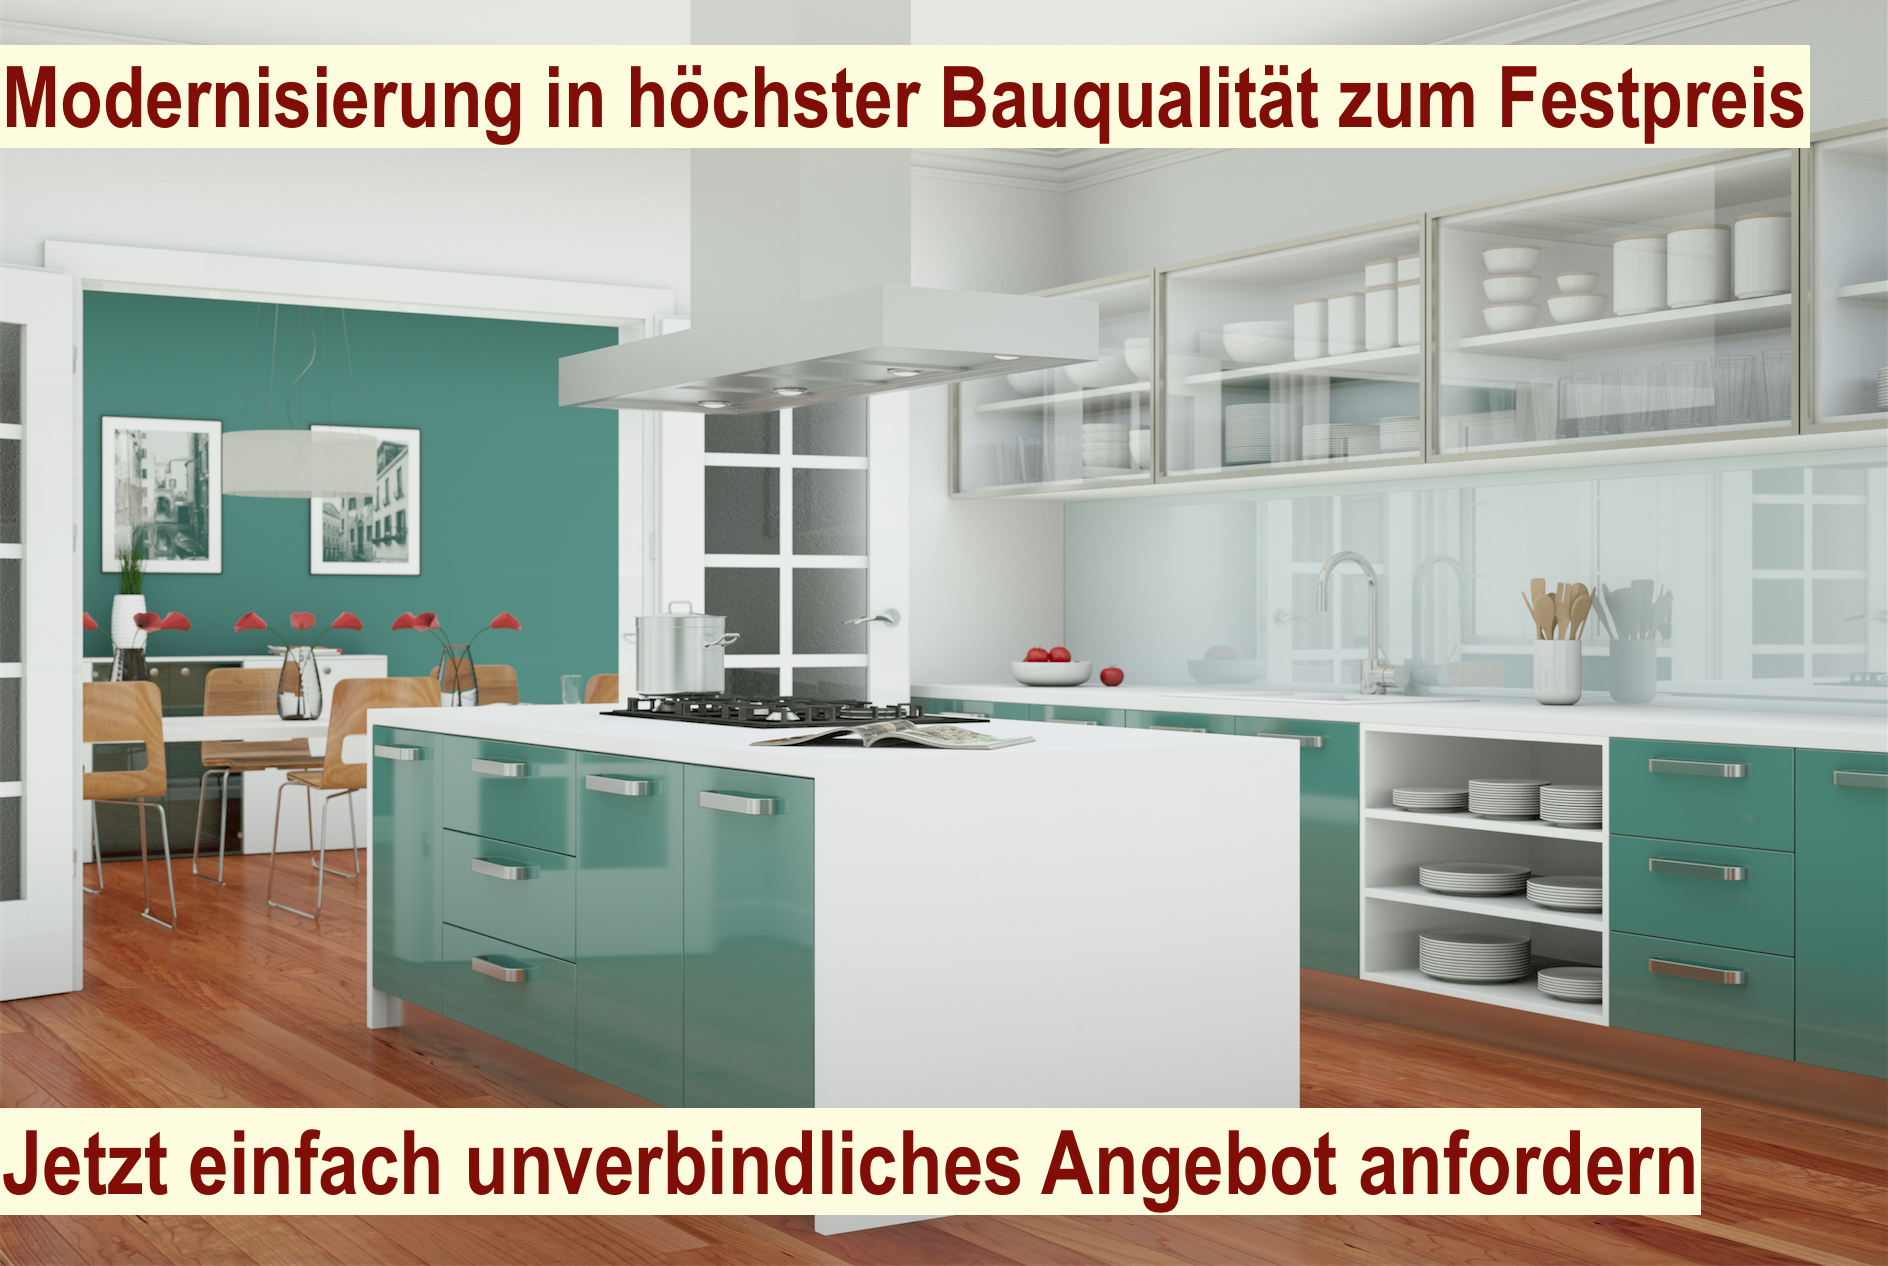 modernisierung berlin immobilien modernisierung. Black Bedroom Furniture Sets. Home Design Ideas